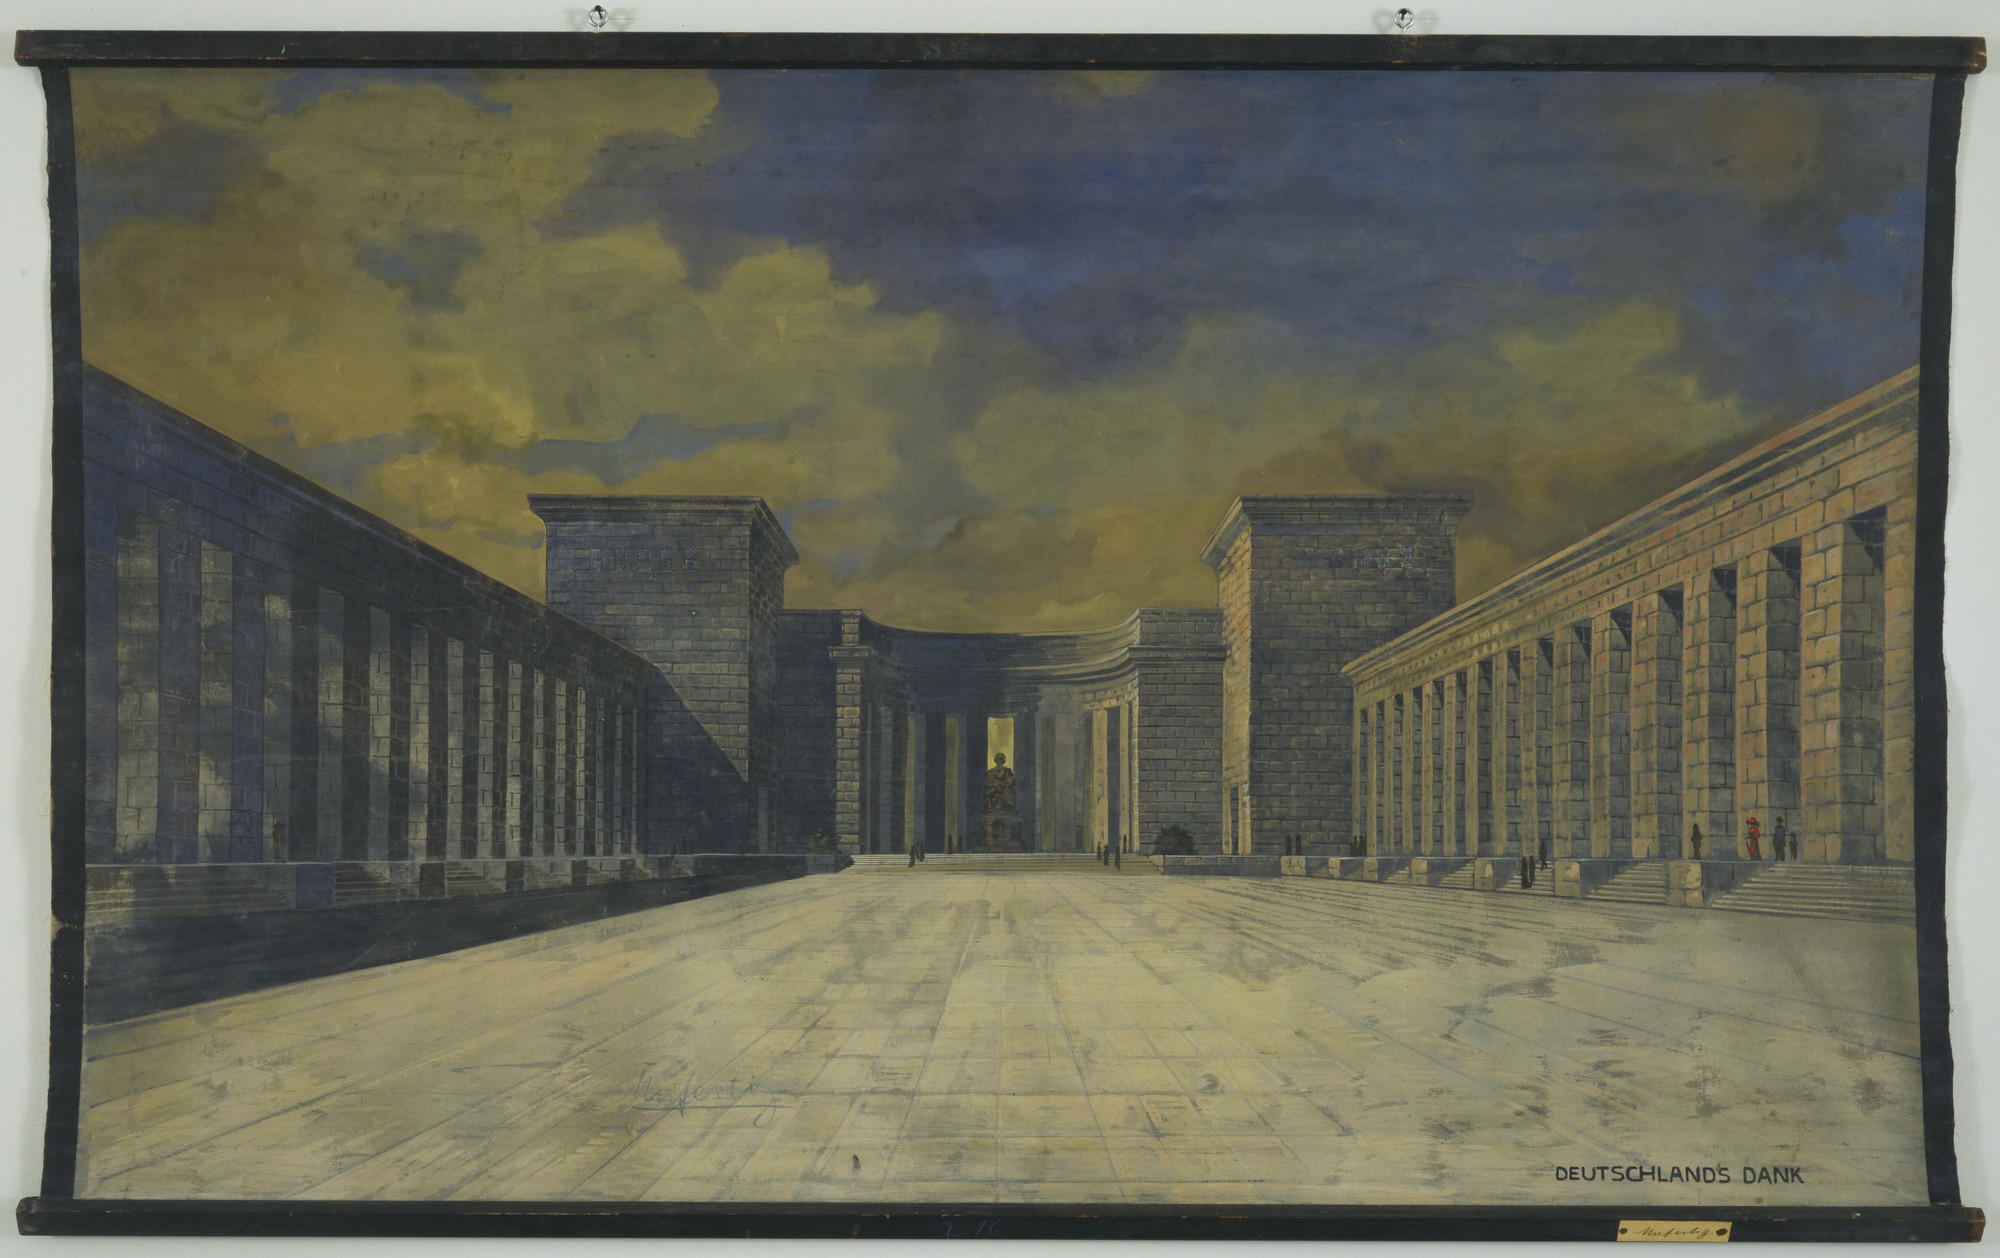 Ludwig Mies van der Rohe. Bismarck Monument, project, Bingen, Germany, Perspective view of courtyard. 1910